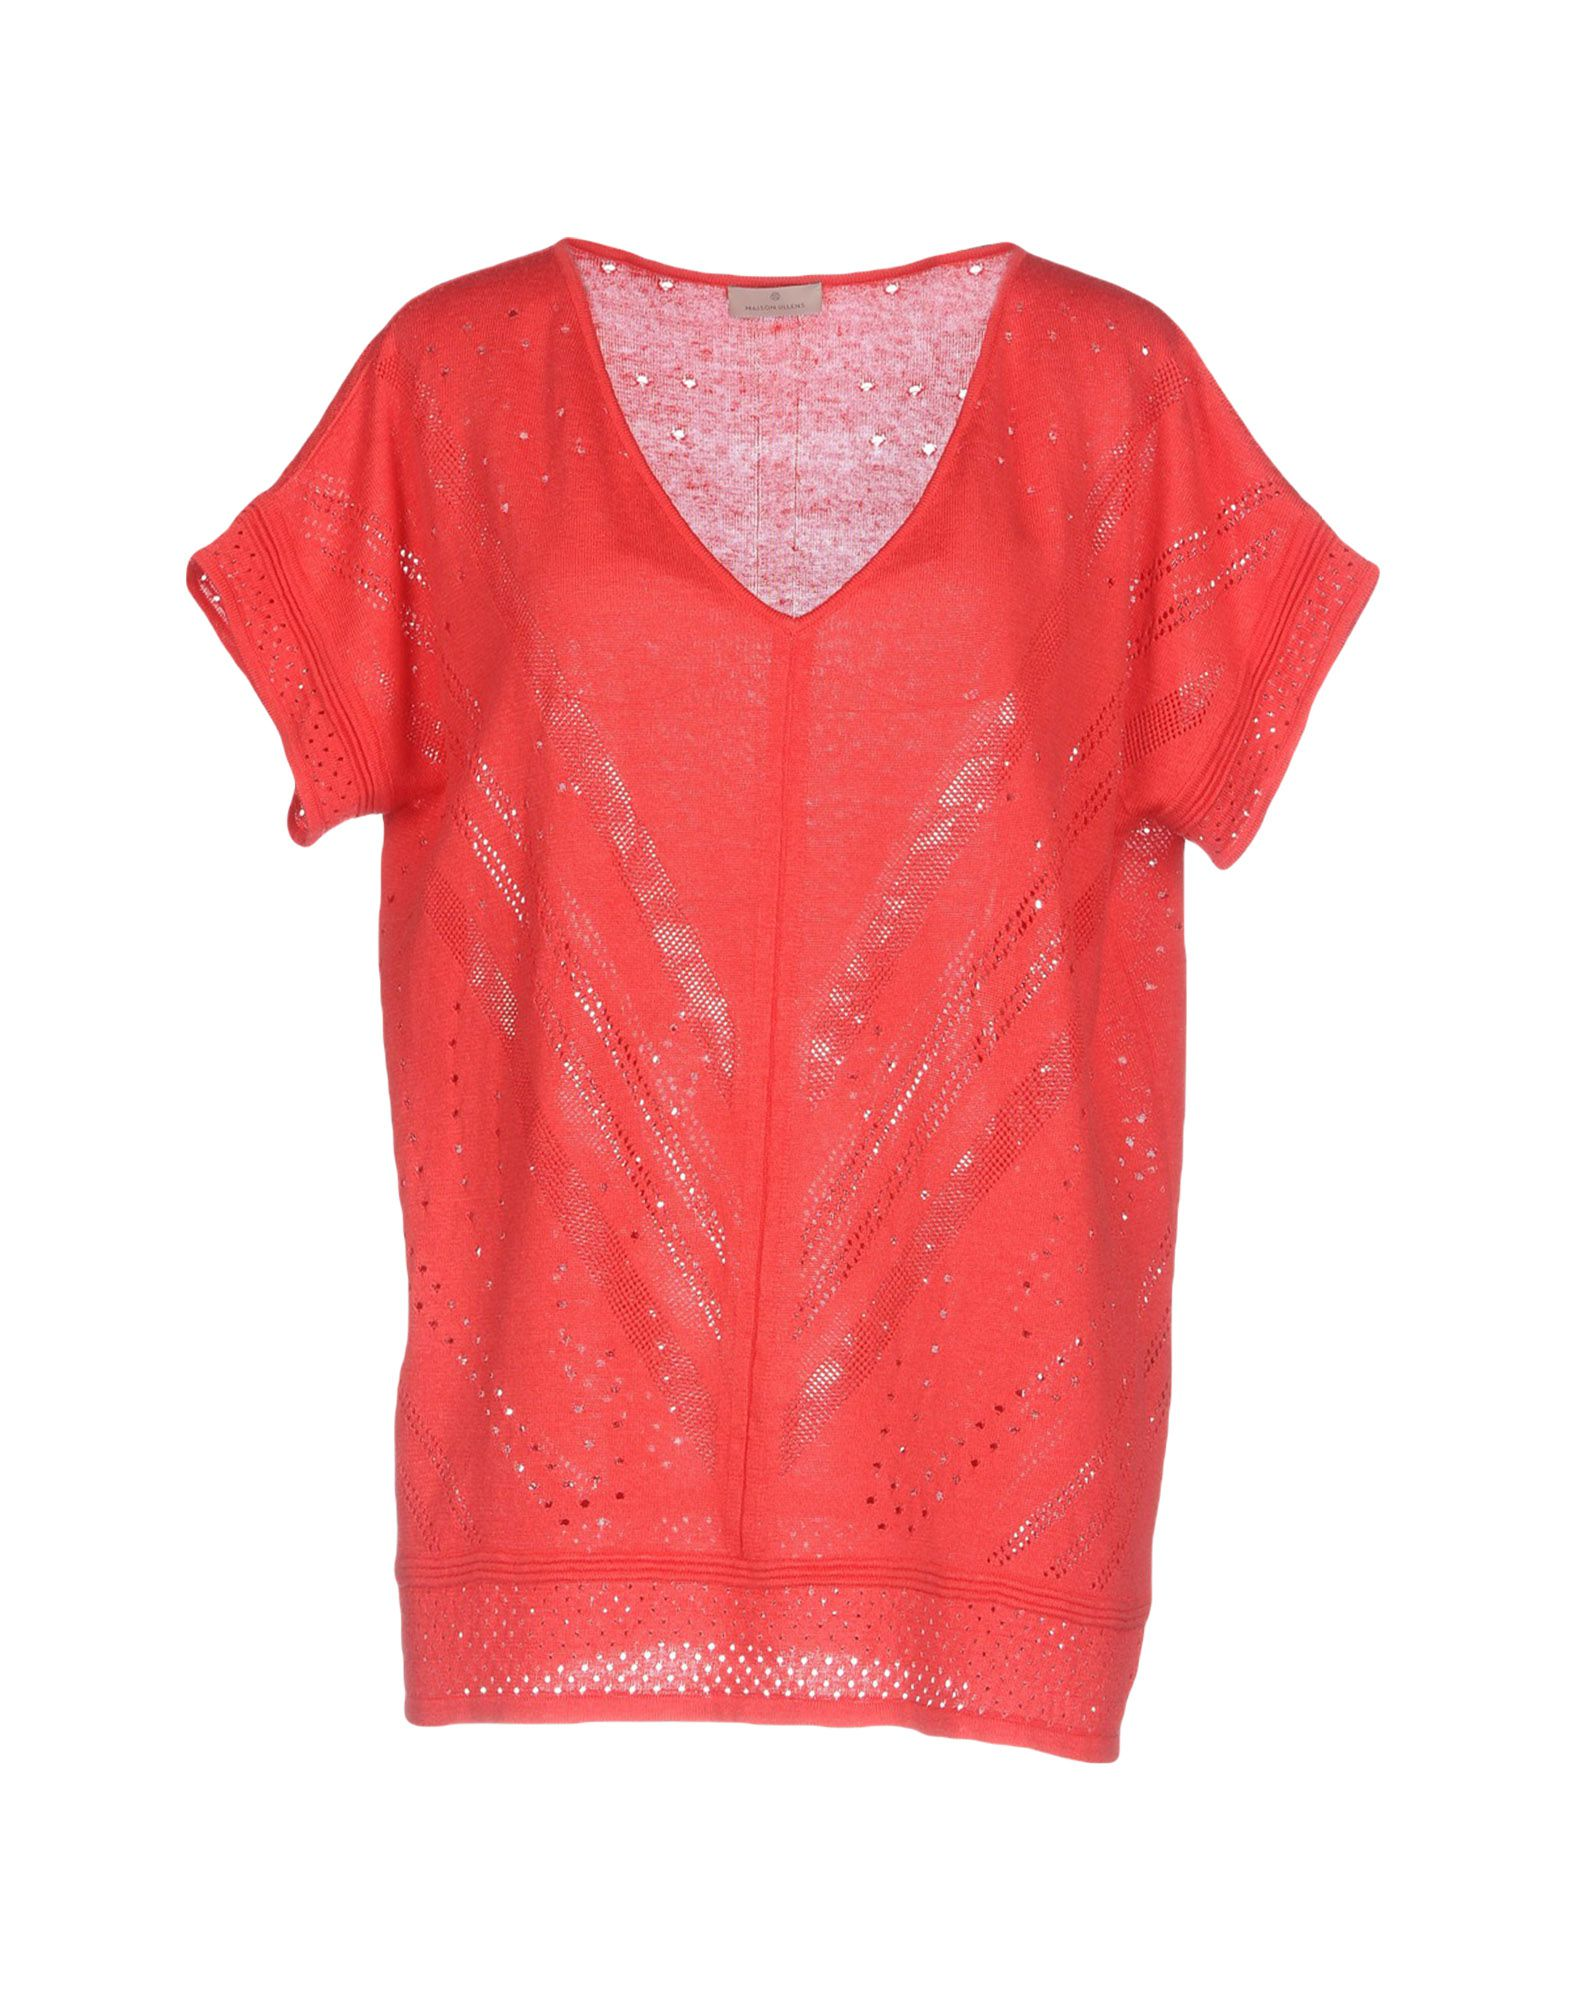 MAISON ULLENS Sweater in Coral